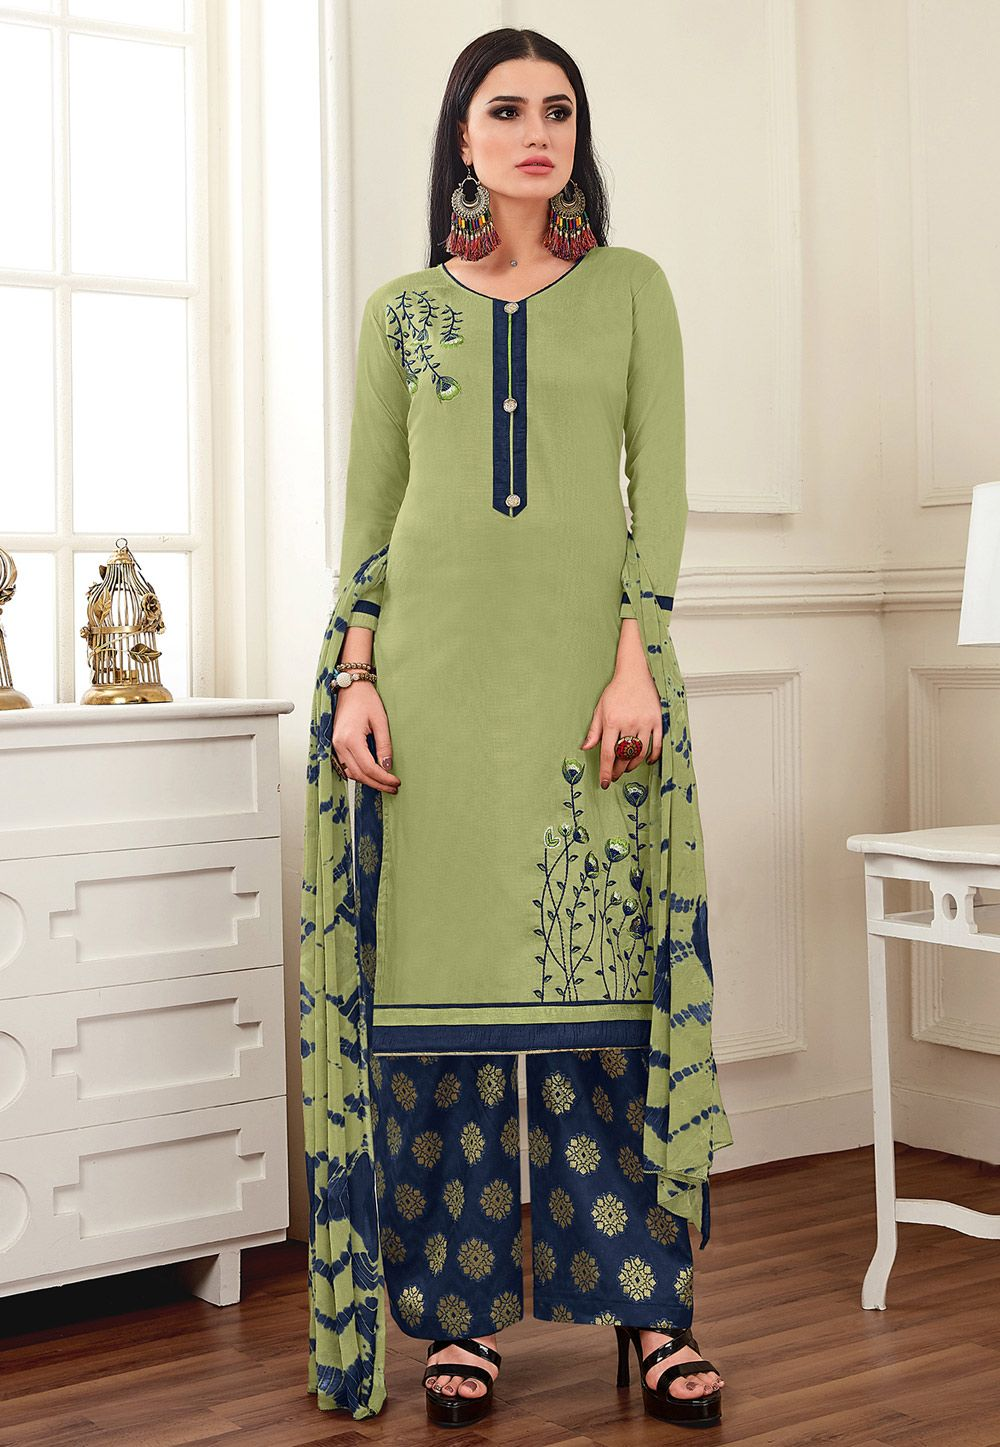 3209b25f8 Buy Light Green Silk Pakistani Style Suit 161668 online at lowest price  from huge collection of salwar kameez at Indianclothstore.com.